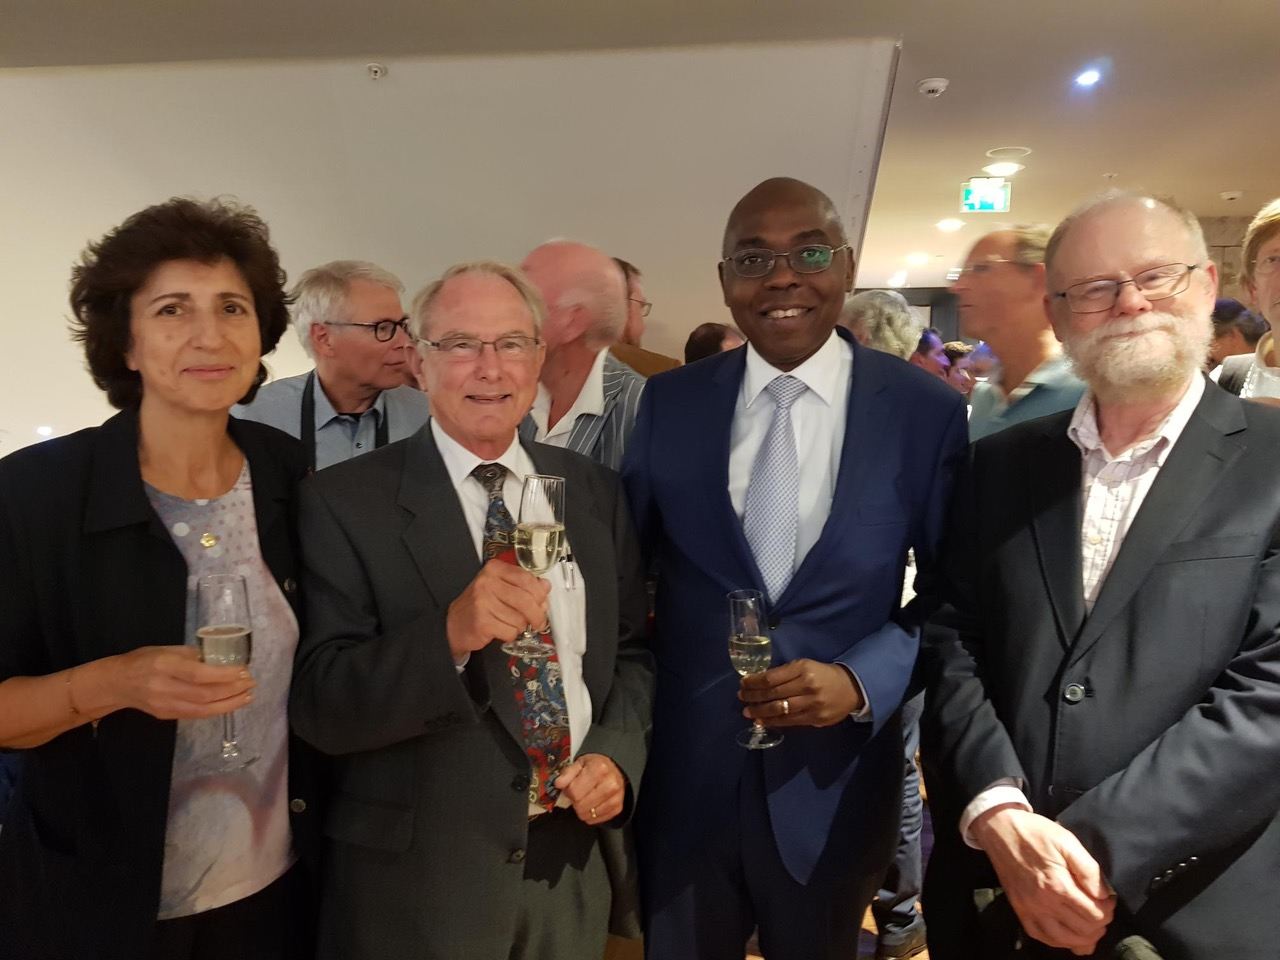 be8f4dfc1ee On 17 September 2018 Prof. Kofi Makinwa was inaugurated as KNAW (The Royal  Netherlands Academy of Arts and Sciences) Member. KNAW Members are selected  for ...